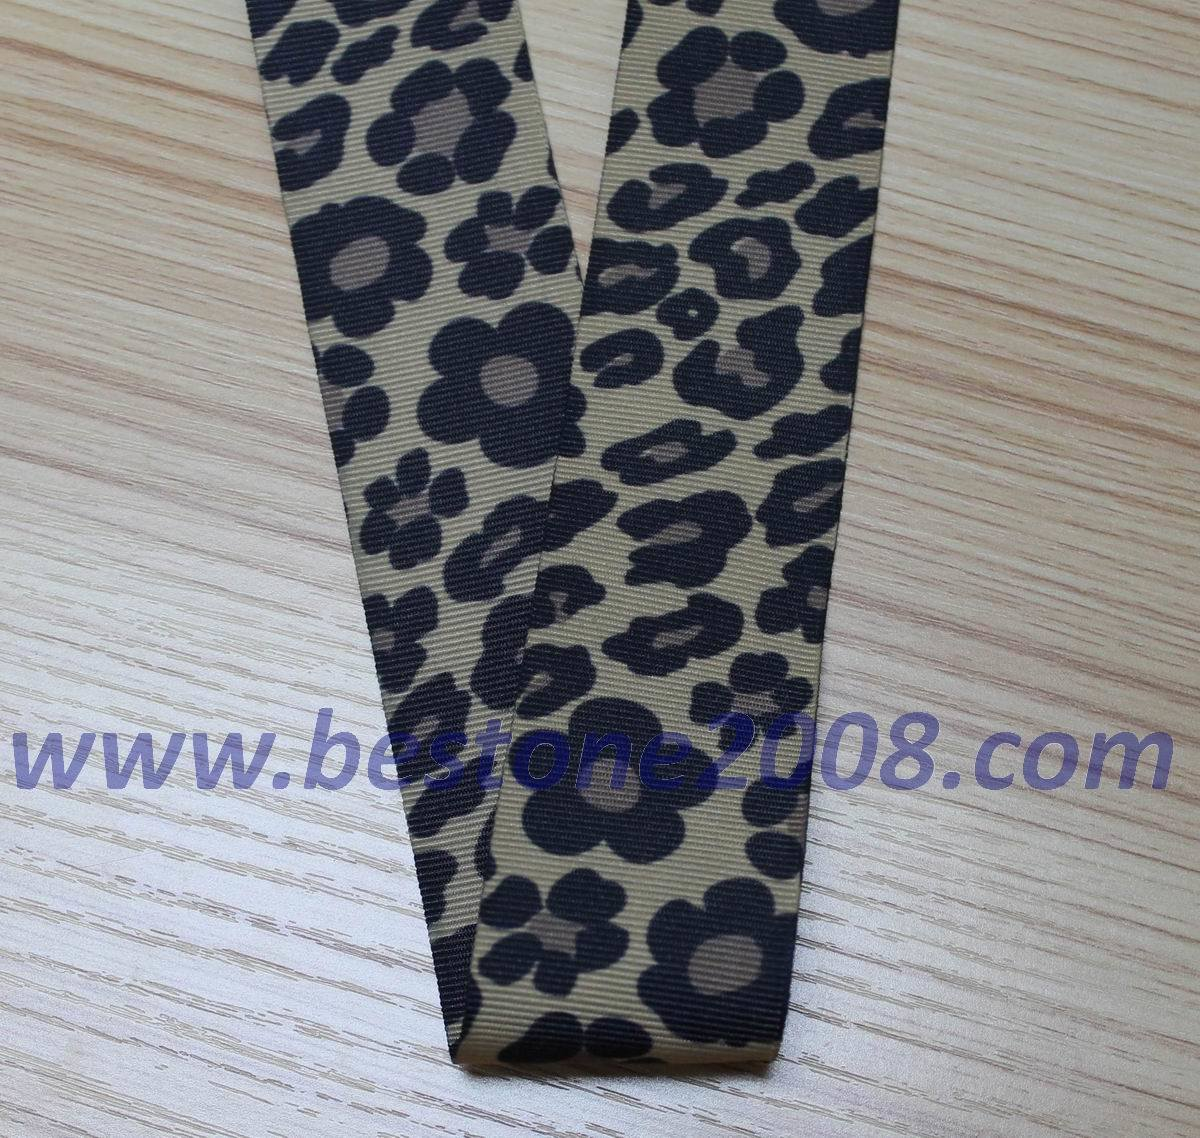 High Quality Double Side Printing Webbing for Bag #1312-4